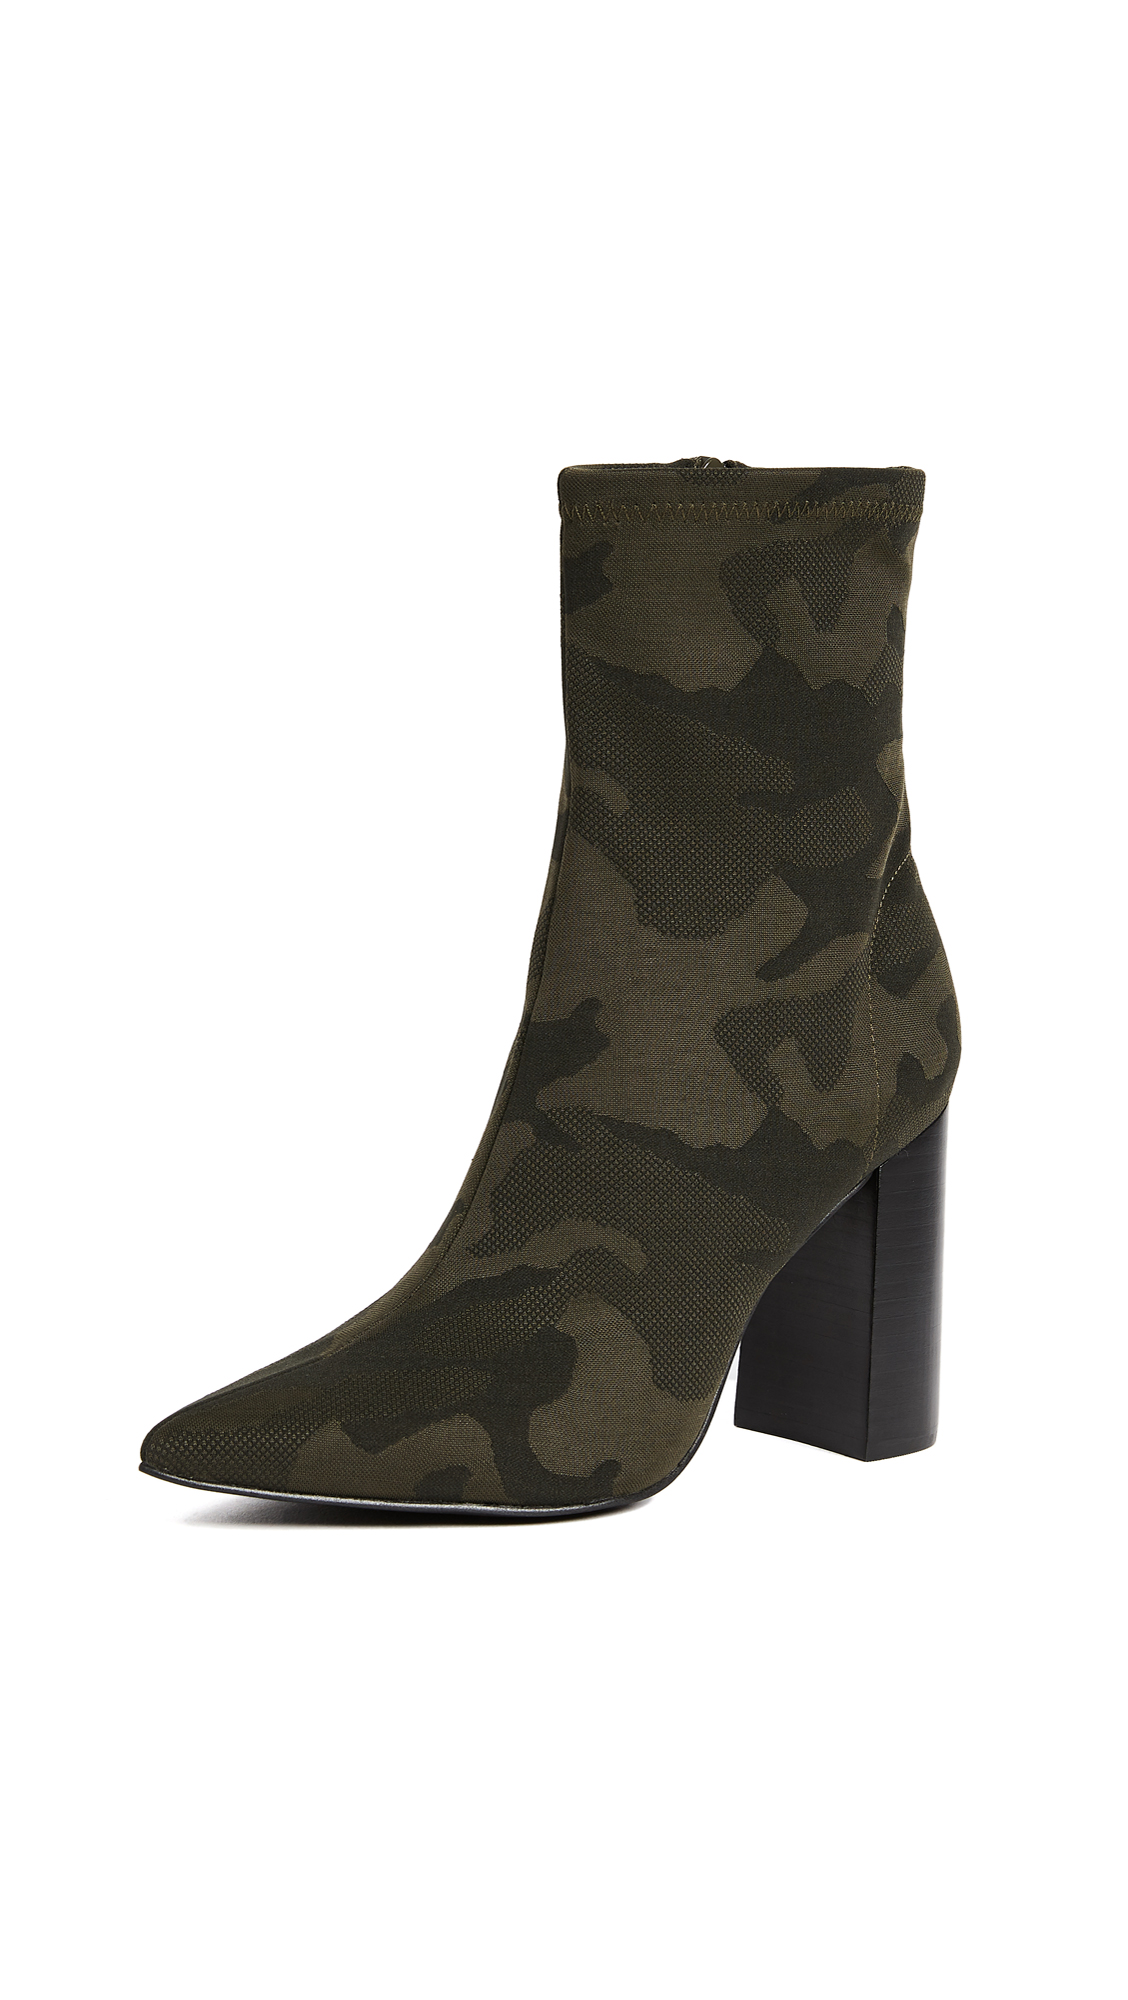 Jeffrey Campbell Siren Block Heel Ankle Booties - Khaki Black Camo